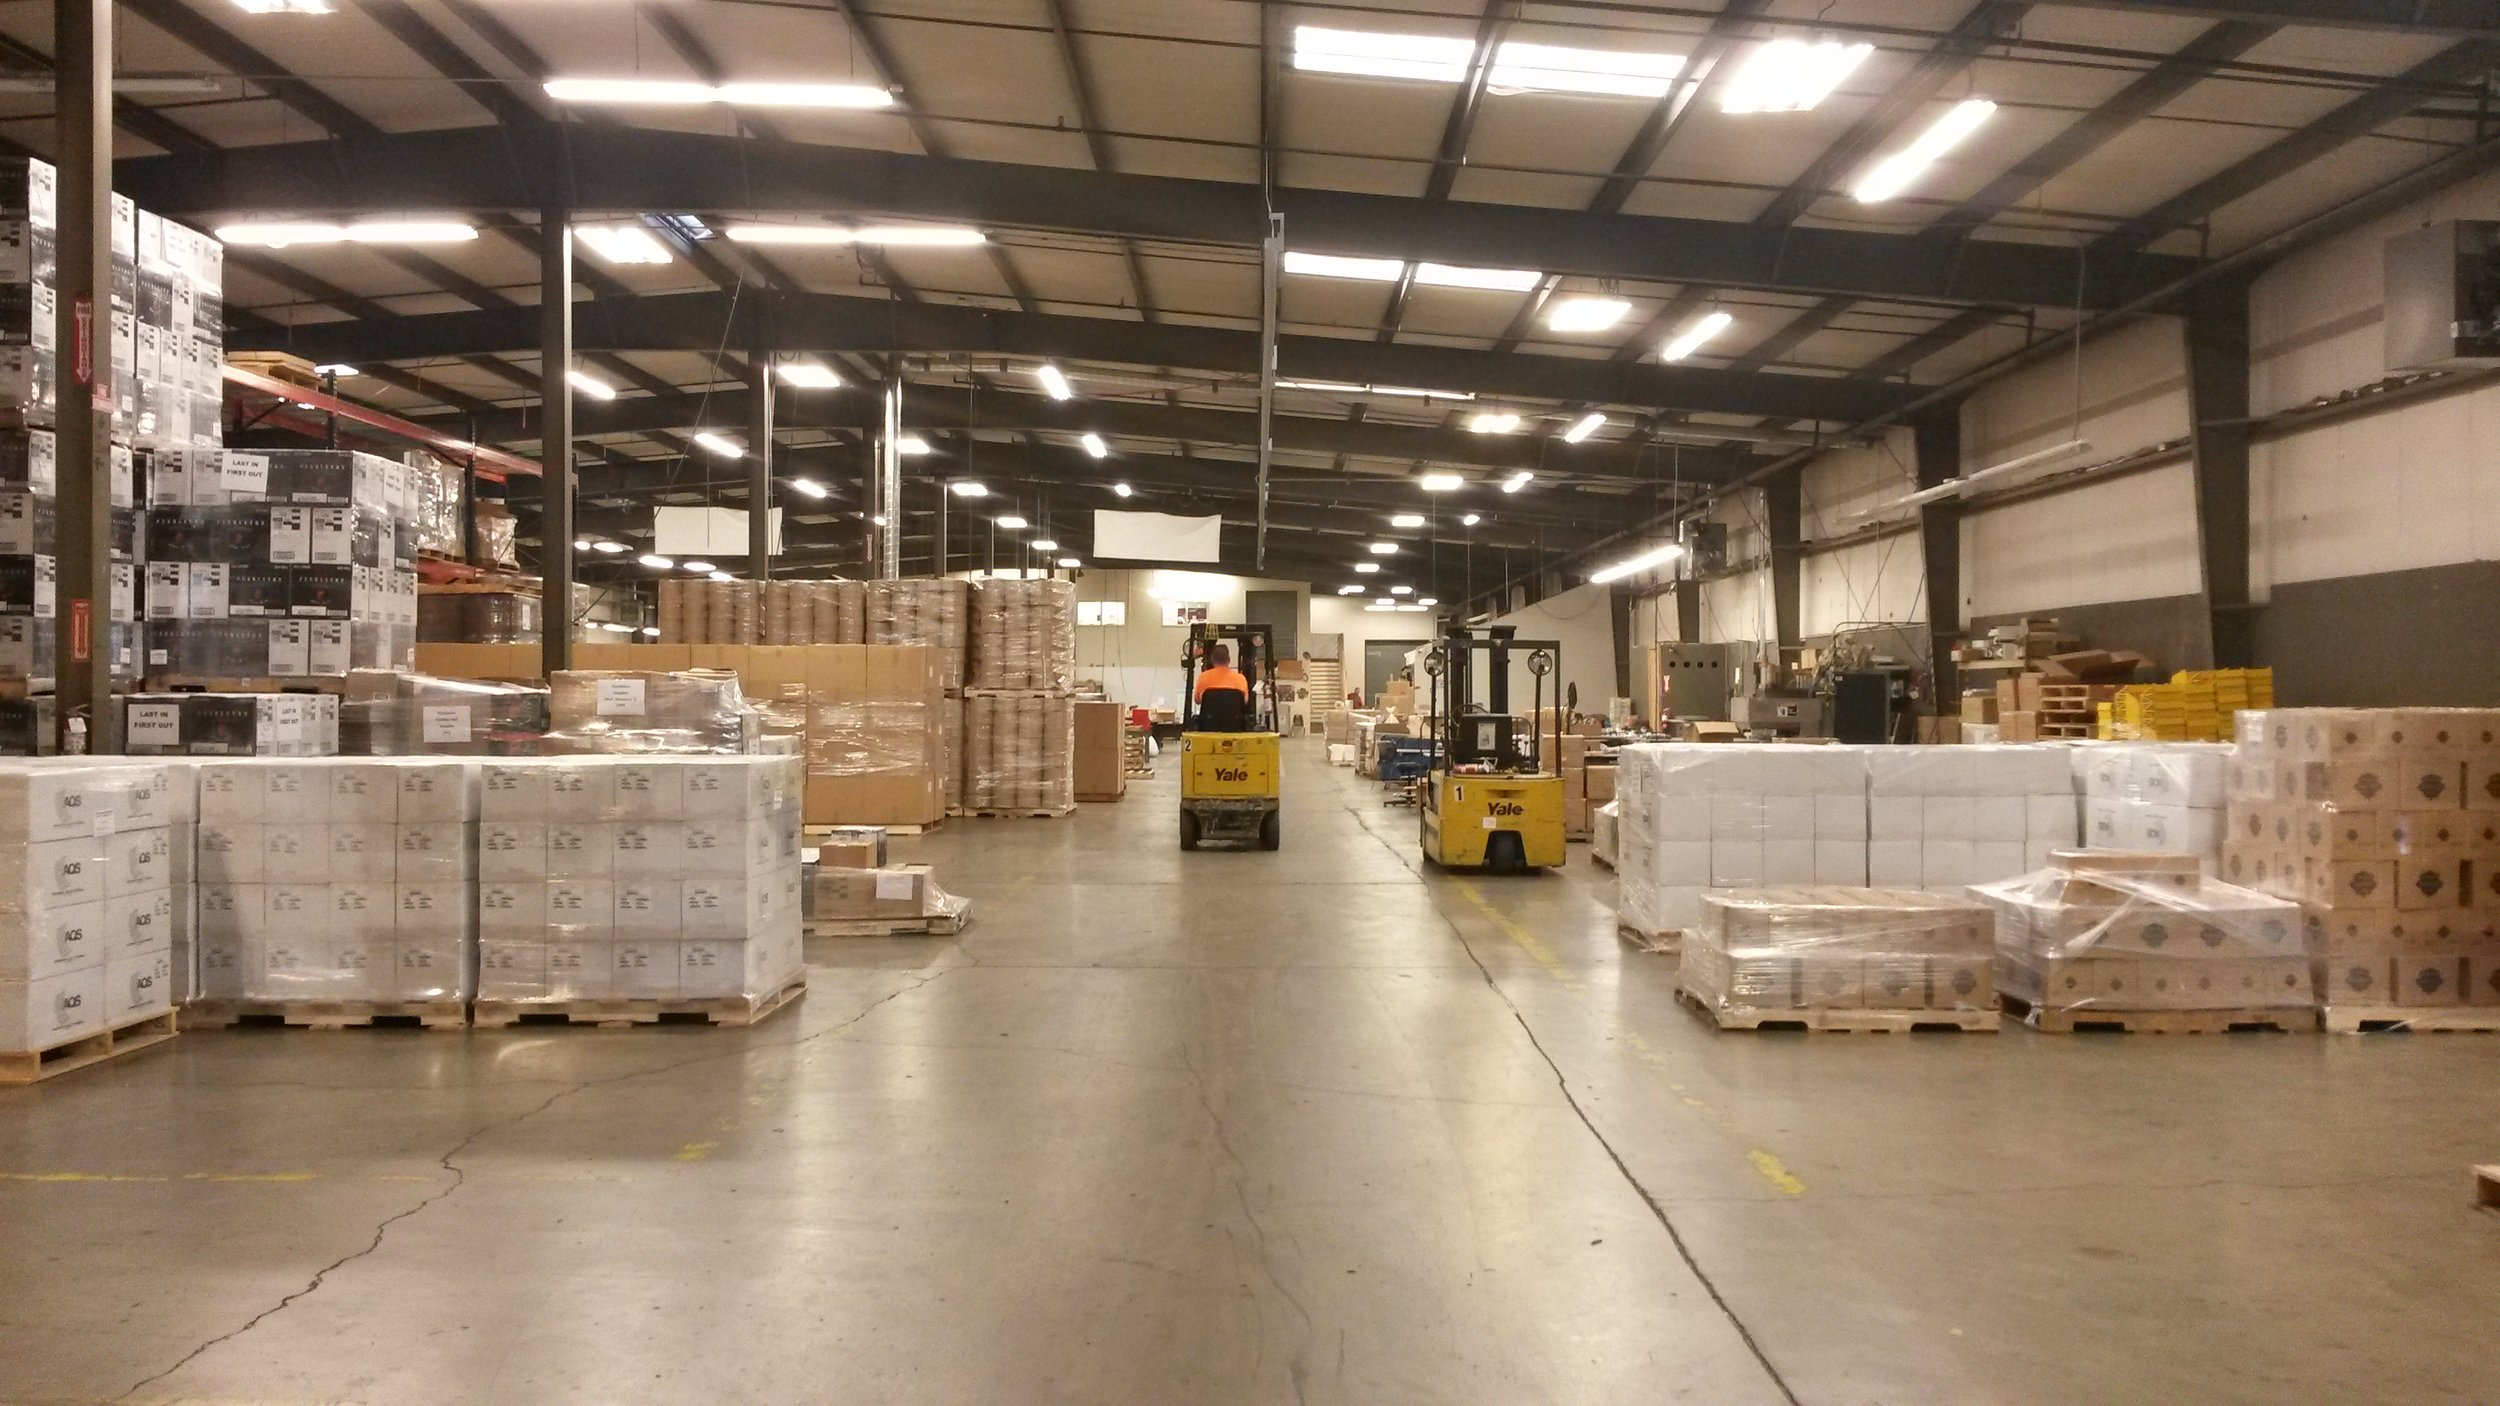 The Exceed Enterprises warehouse.